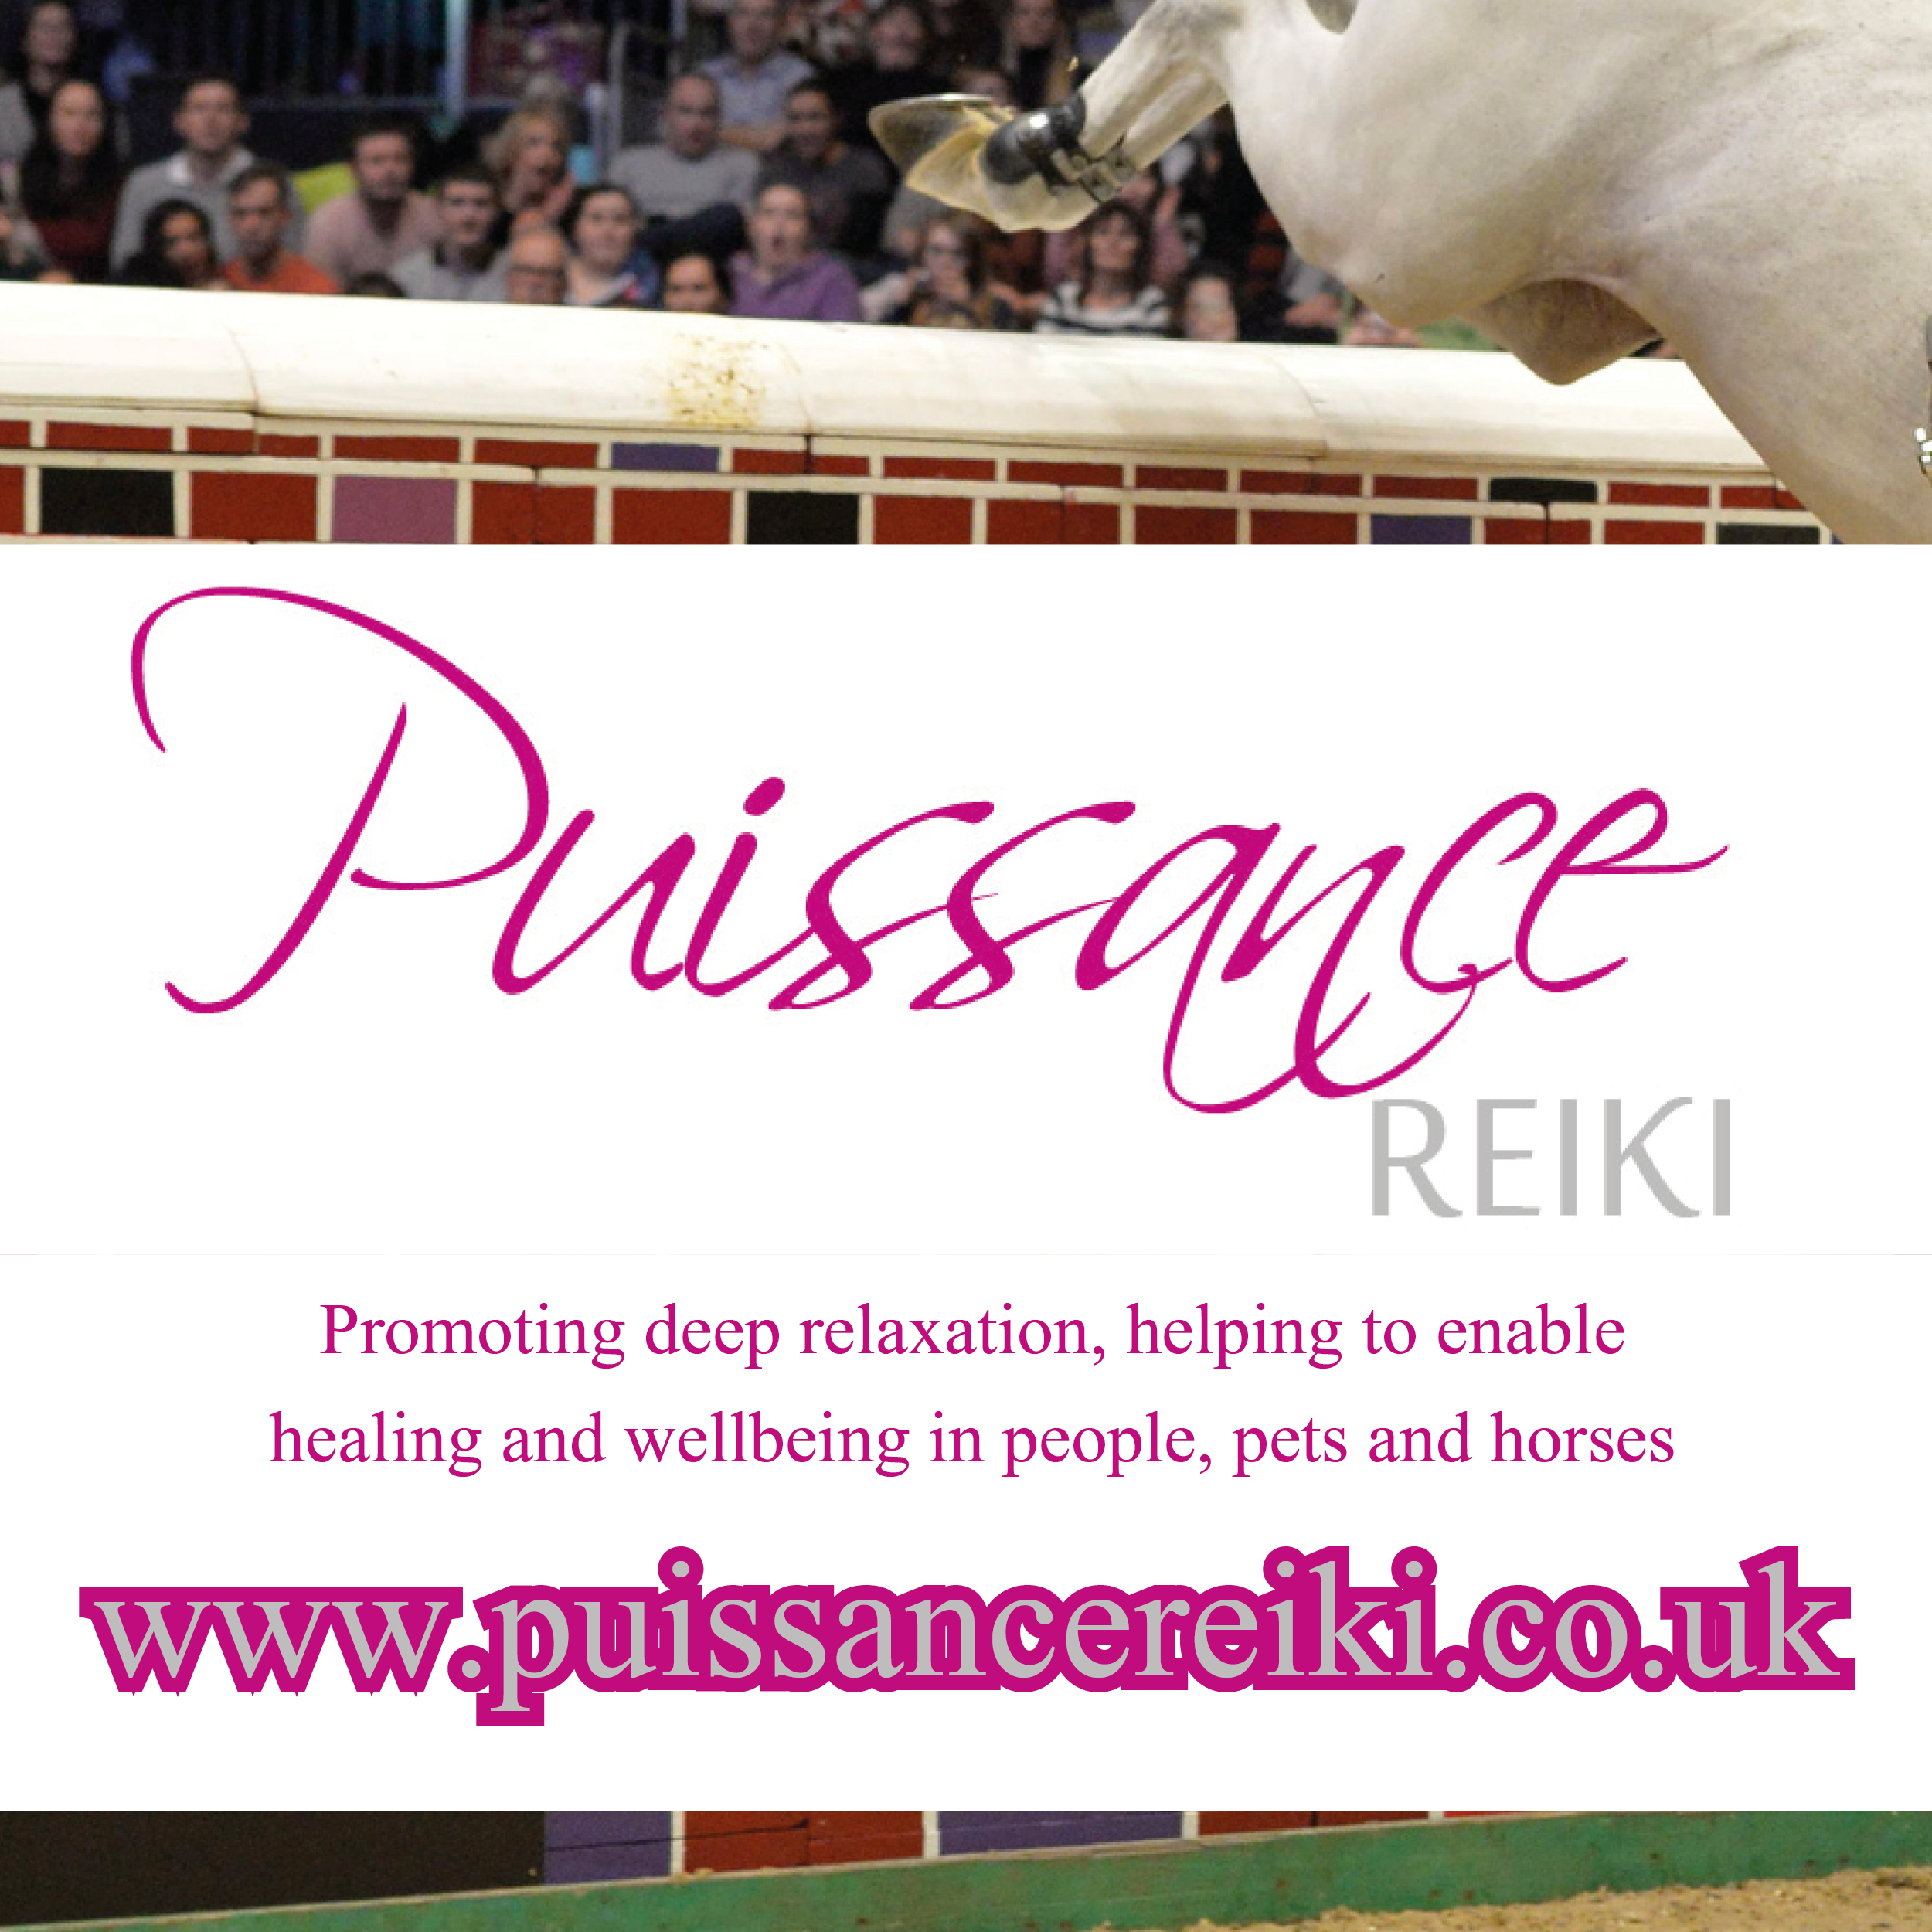 Pussiance Reiki Available throughout the Northwest for Horse, Animal and Human